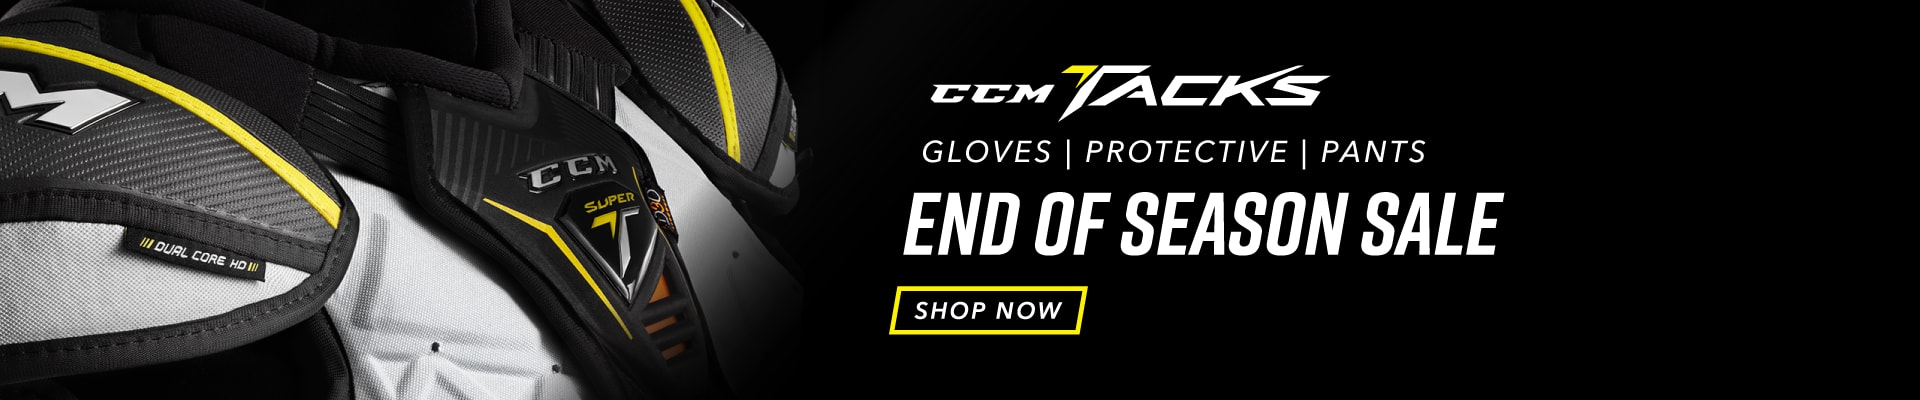 CCM Tacks Protective Sale